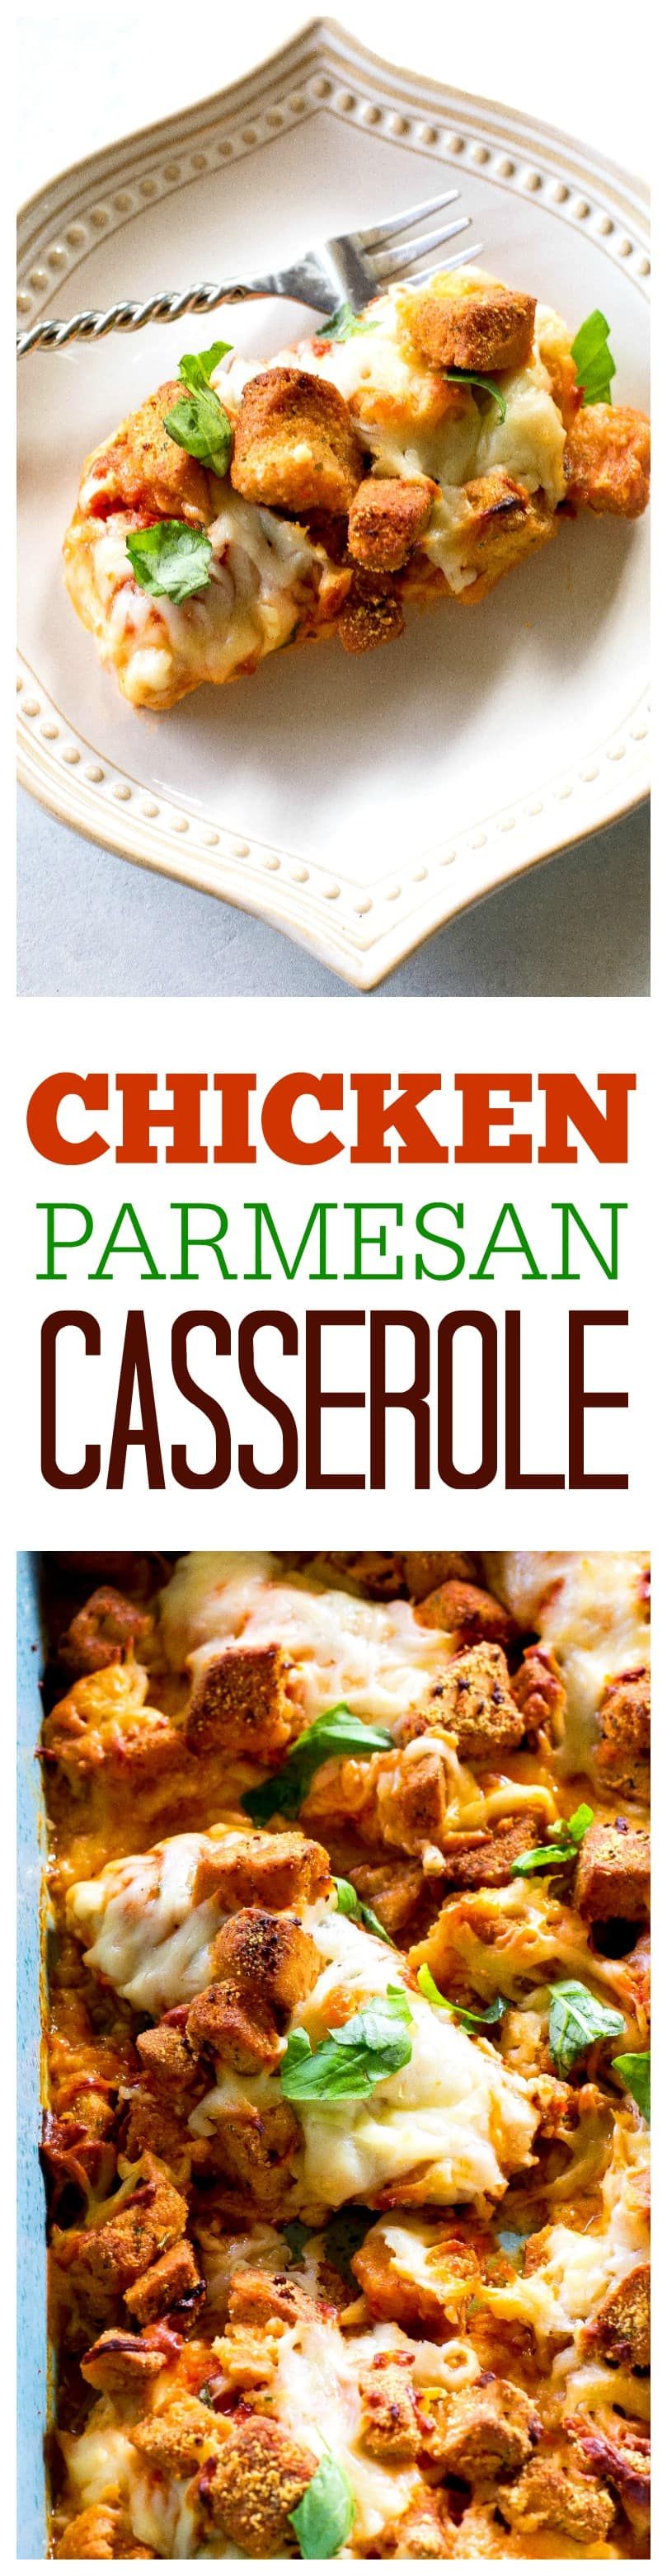 Chicken Parmesan Casserole - no frying this cheesy Parmesan chicken topped with crunchy garlic croutons. #chicken #parmesan #casserole #recipe #italian